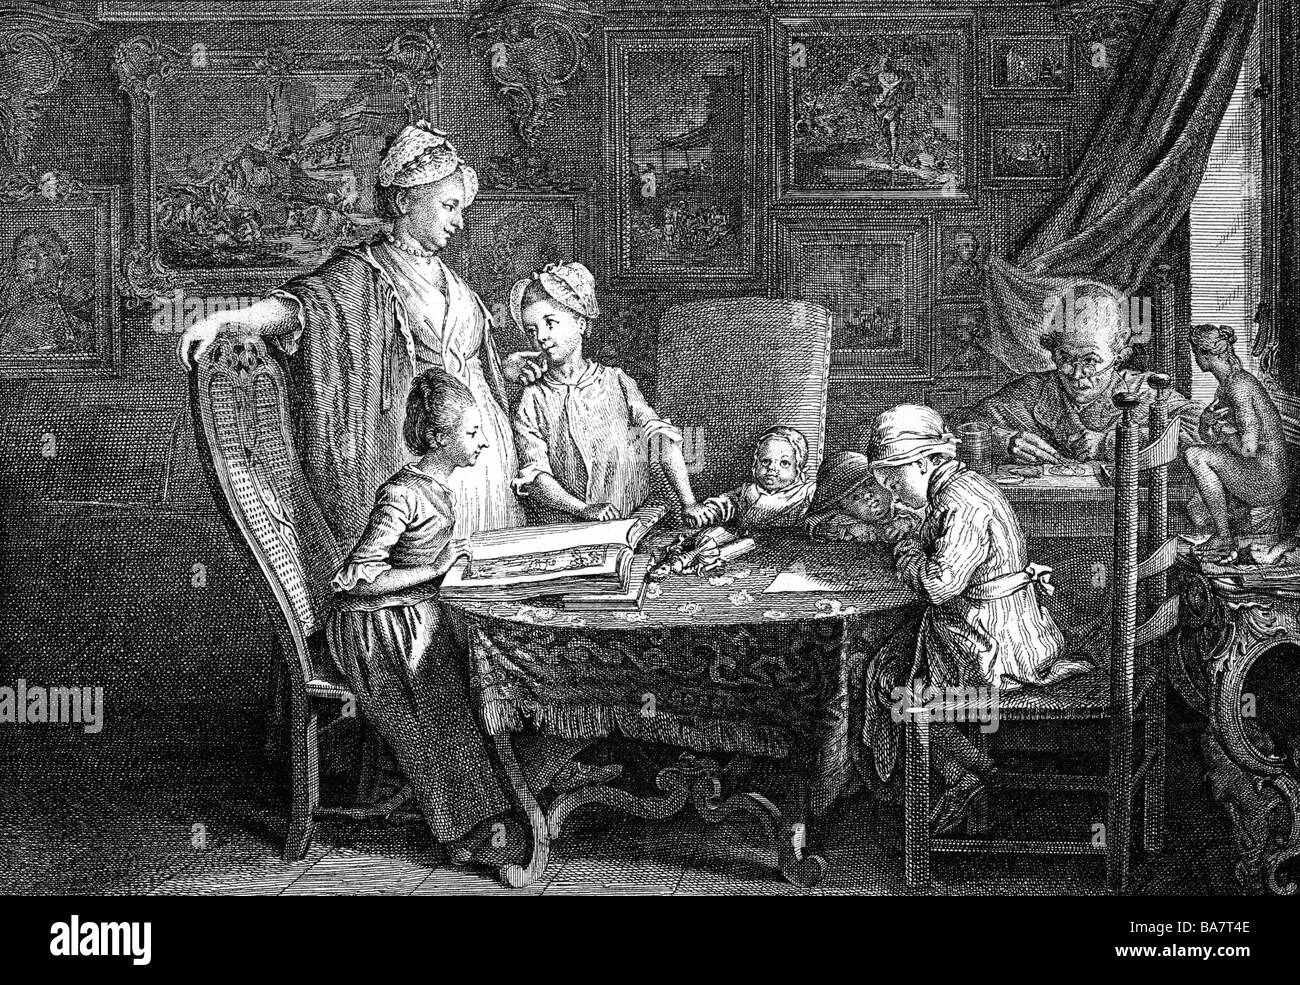 Chodowiecki, Daniel, 16.10.1726 - 7.2.1801, Polish - German painter and printmaker, disturbed by his family, copper - Stock Image